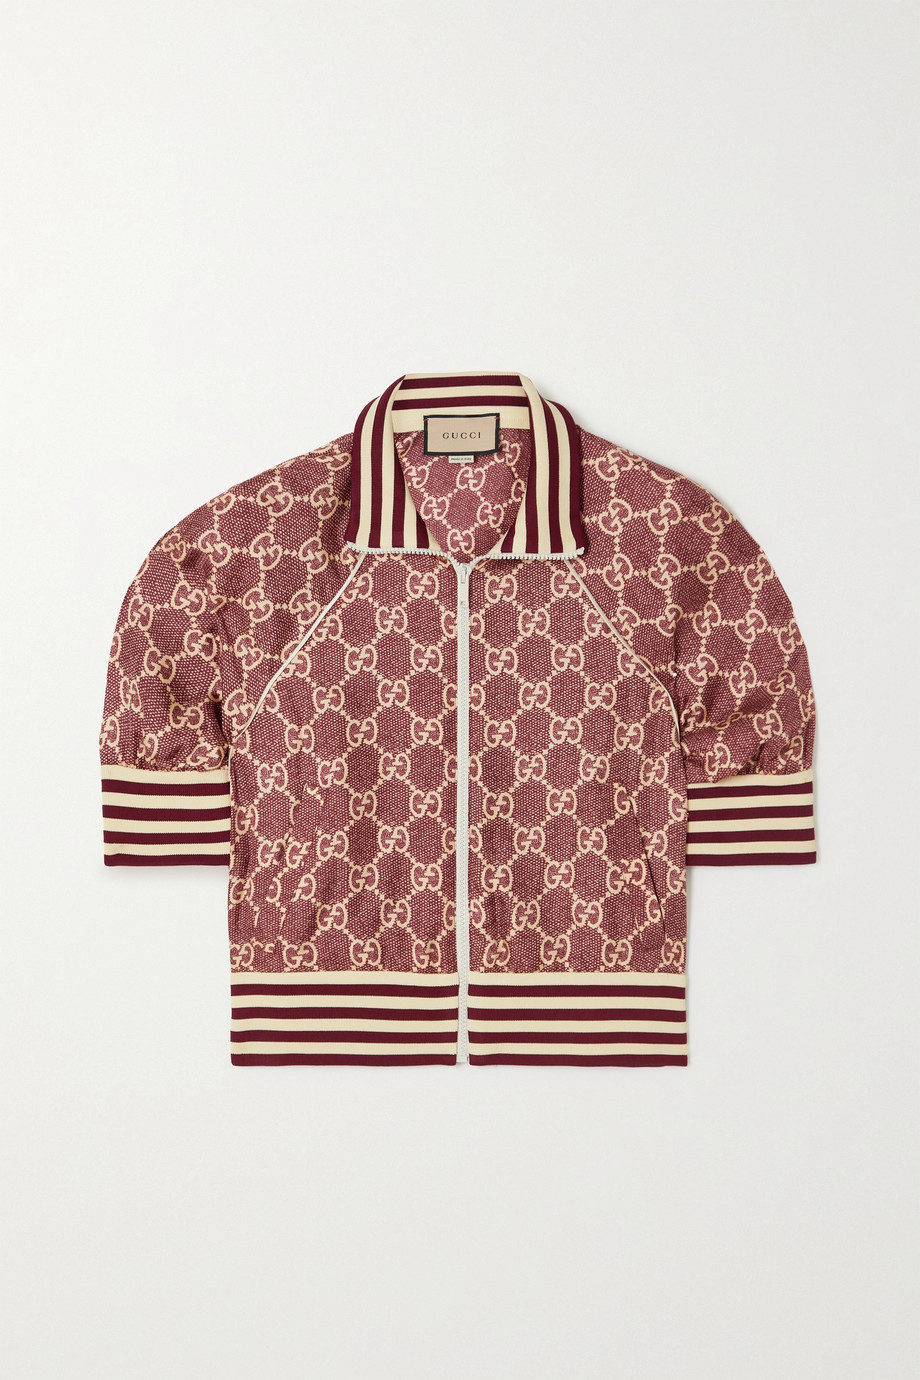 Gucci Printed silk-twill jacket